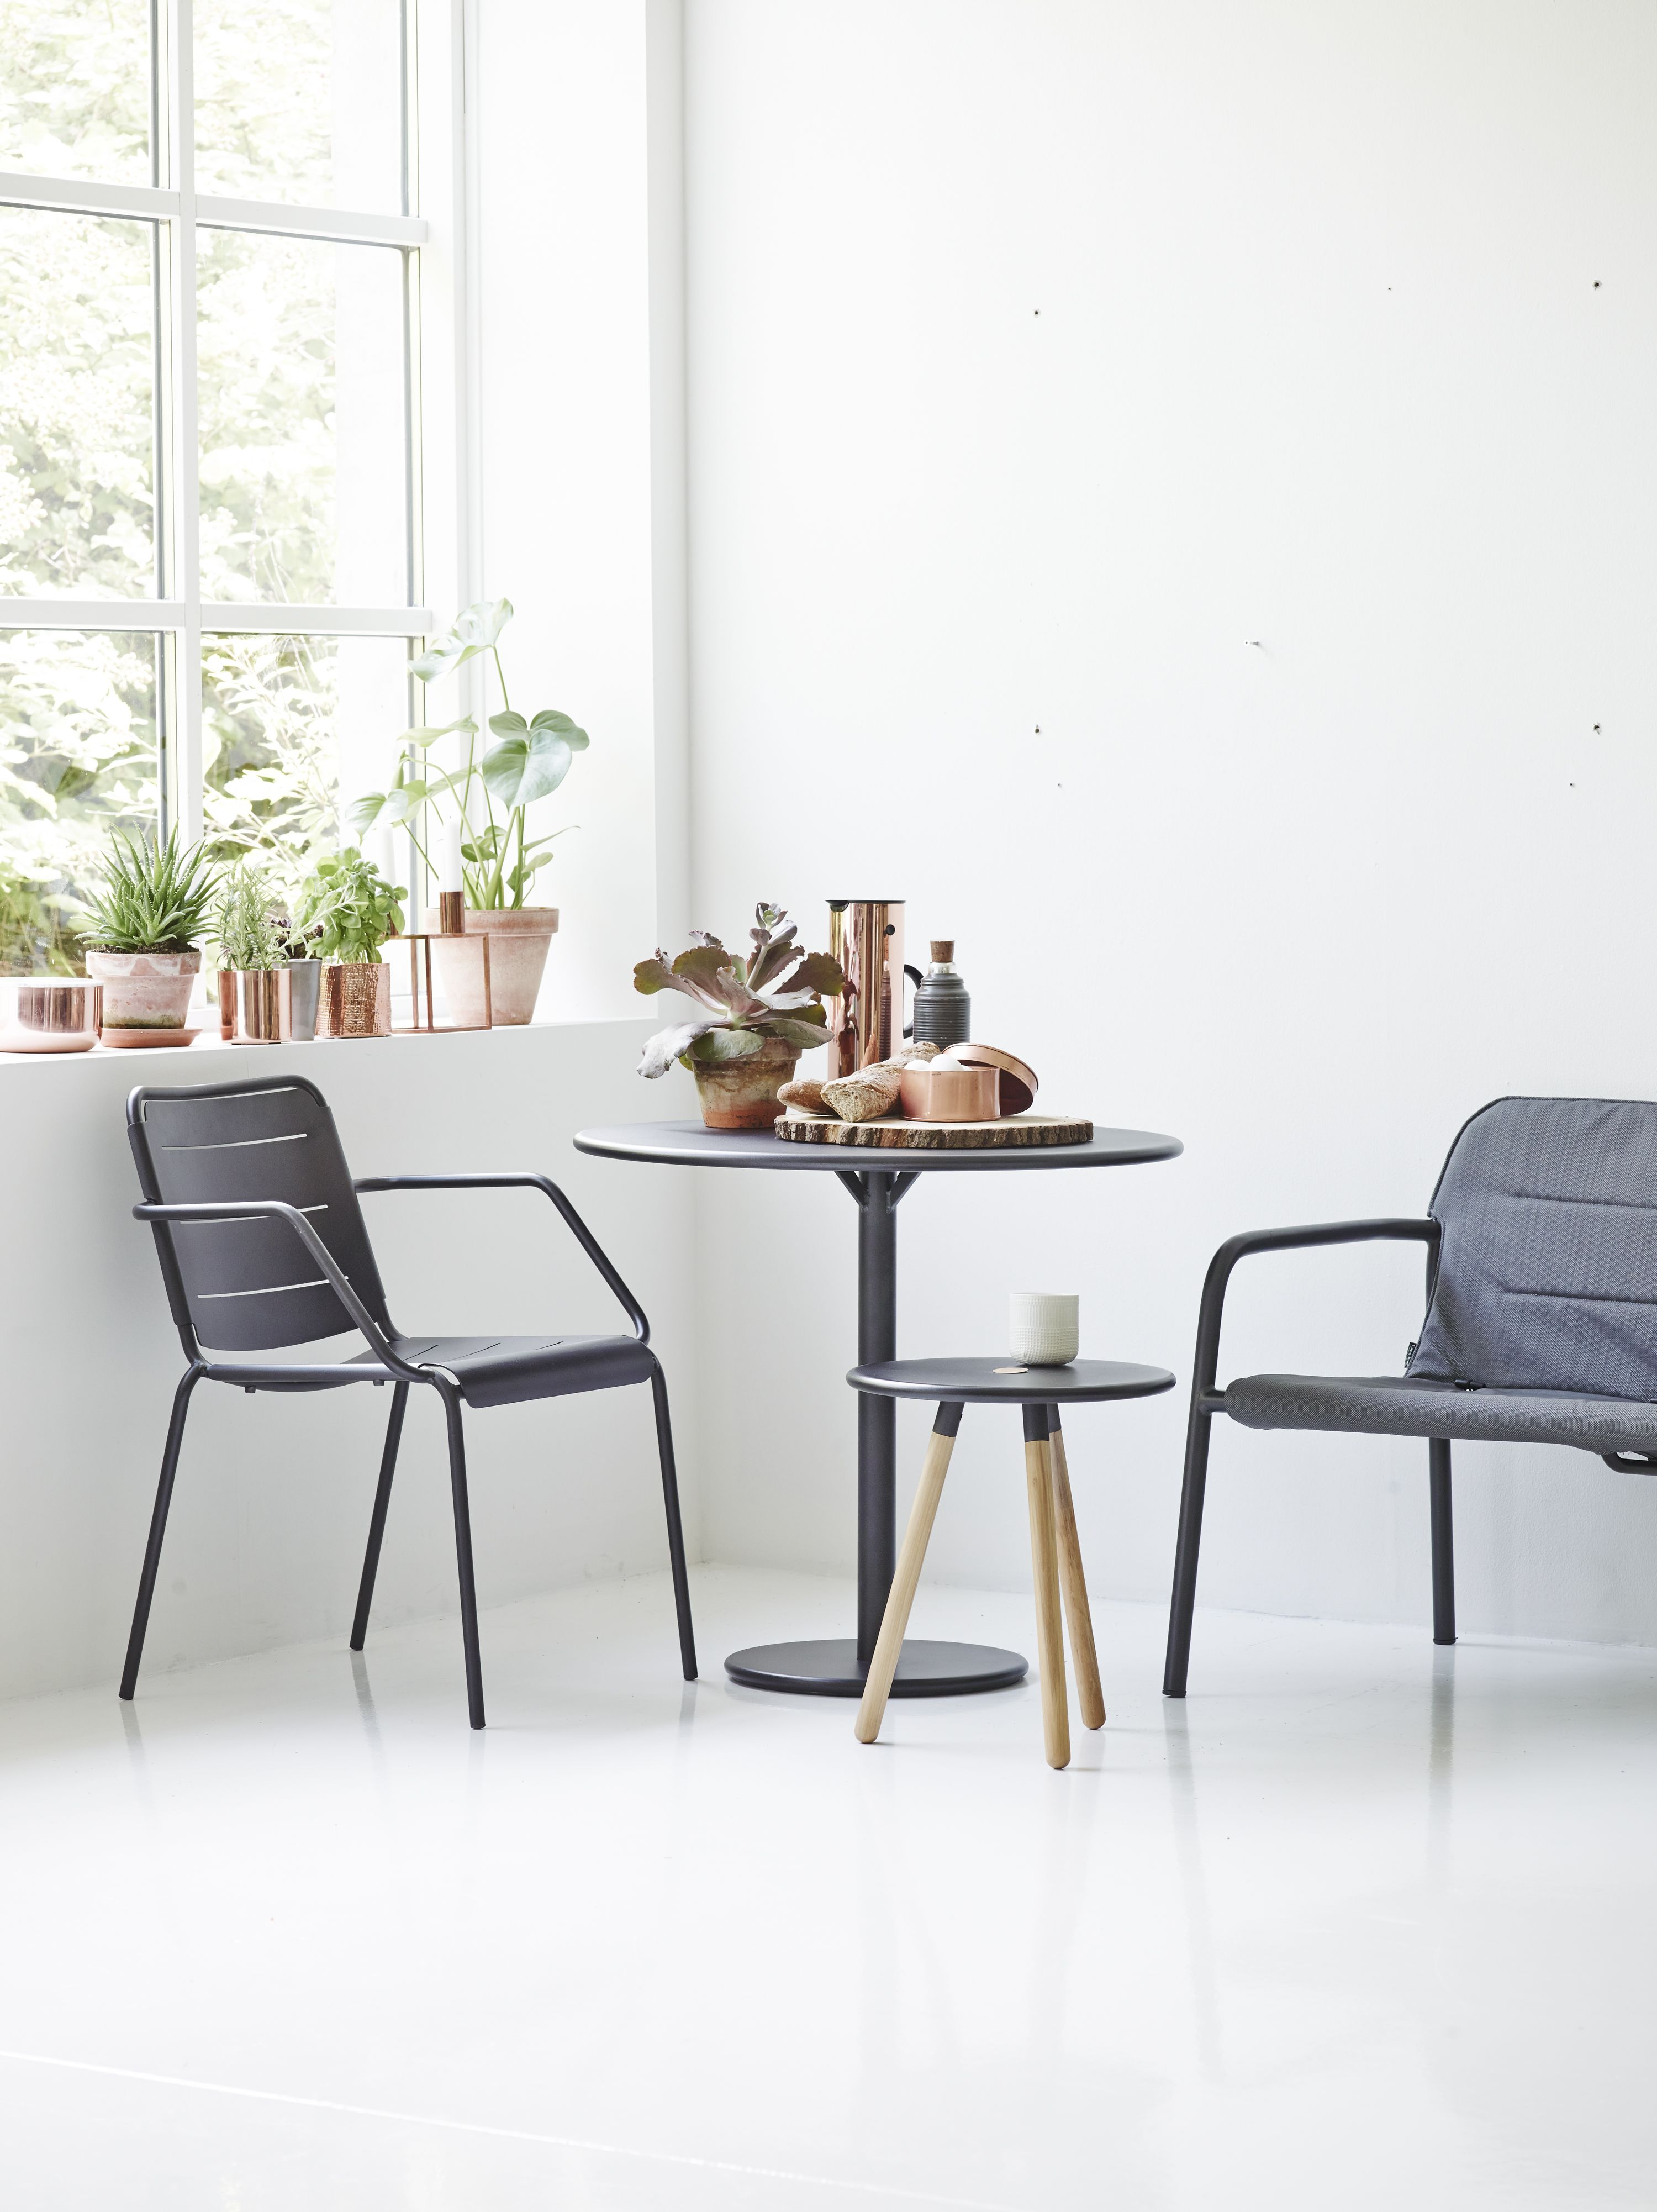 Go Table Copenhagen Stool Kapa Lounge Chair And Area Table Stool Perfect For A Small Area Both F High Back Dining Chairs Compact Table And Chairs Furniture